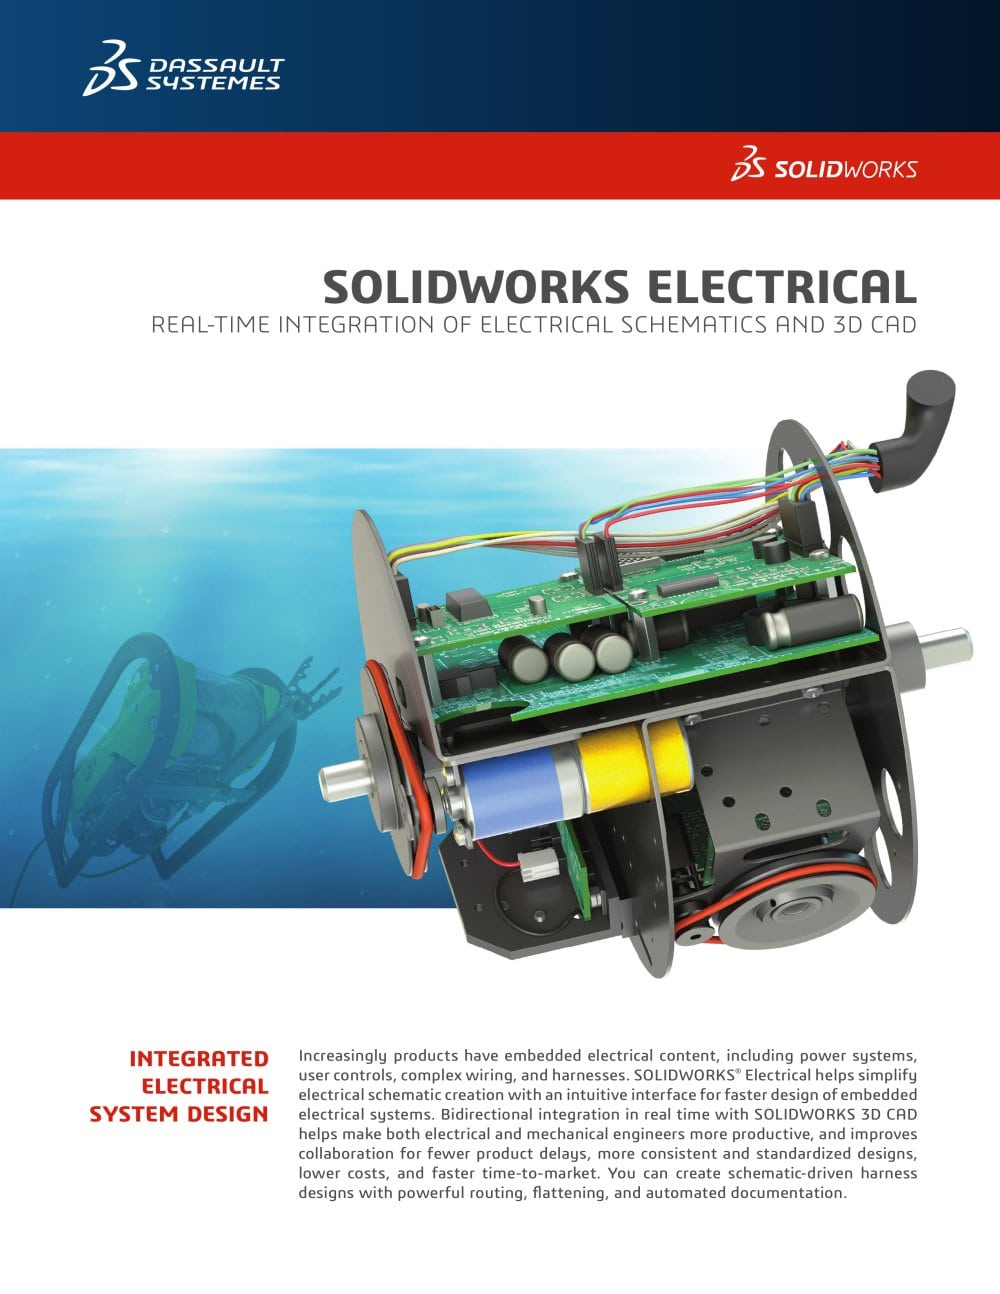 Electrical Design Dassault Systmes Solidworks Corp Pdf Basics Of Drawing Schematics In 2d 1 4 Pages